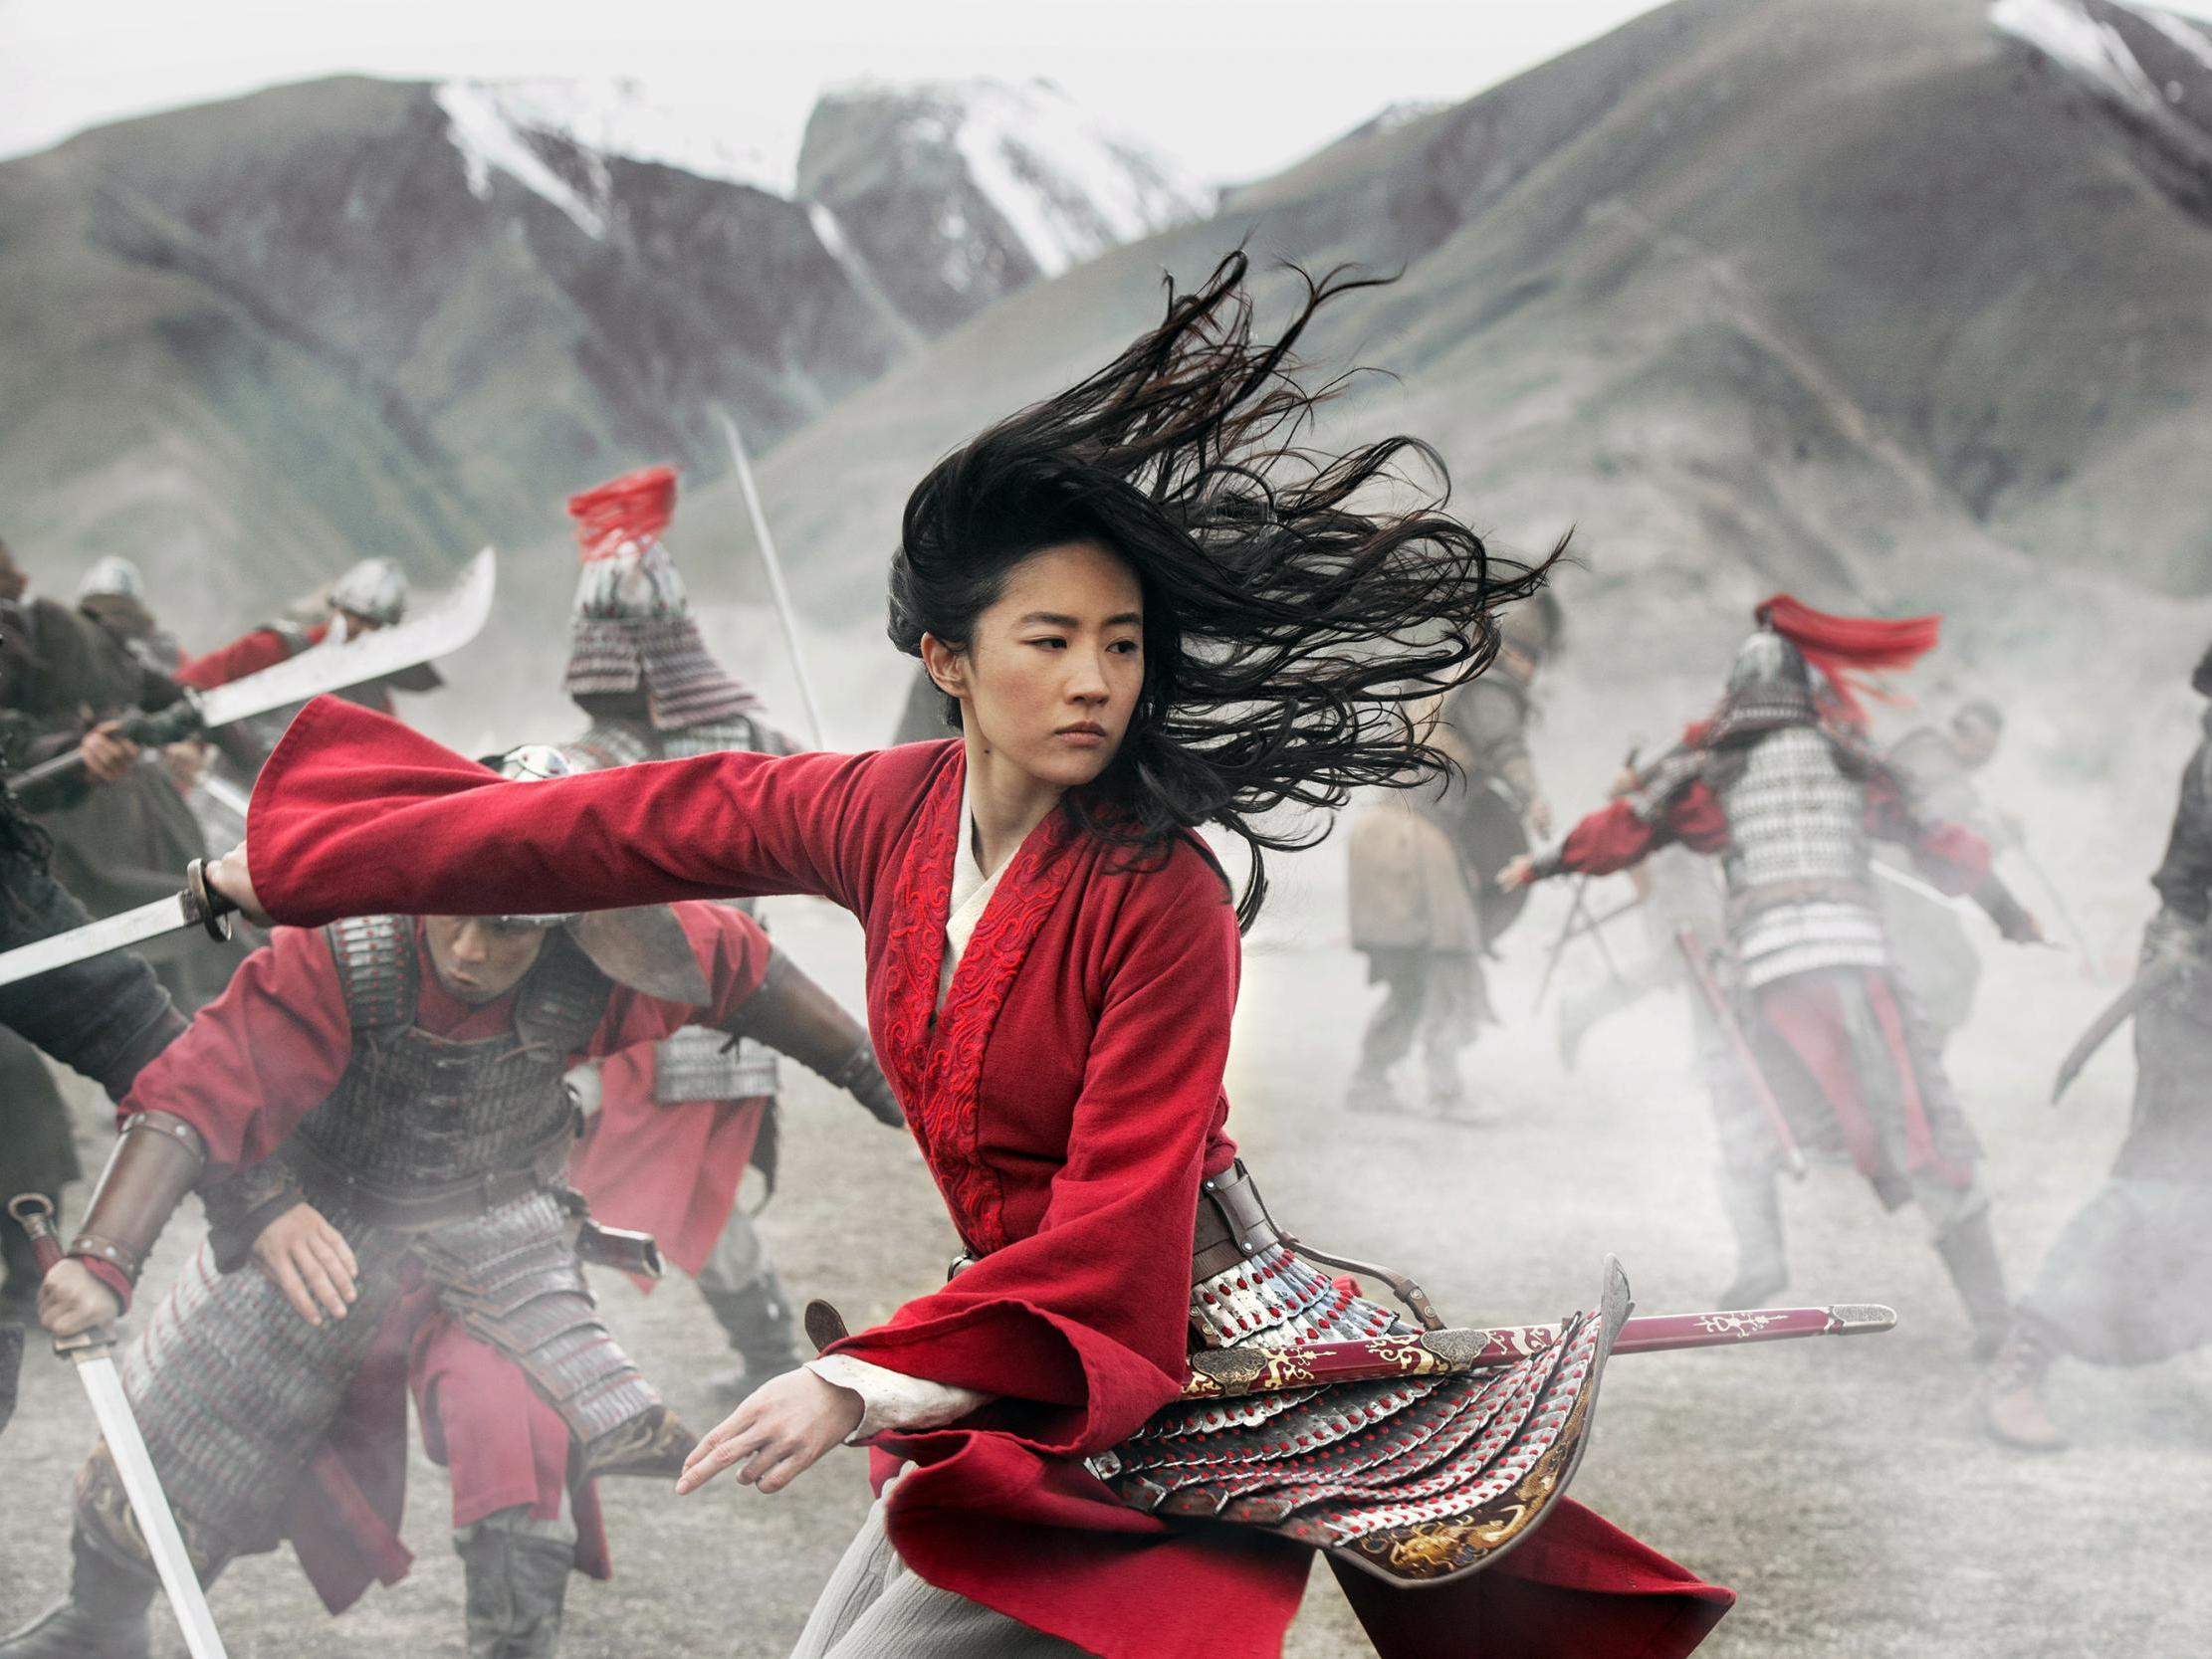 The real story behind Mulan, the legendary Chinese warrior